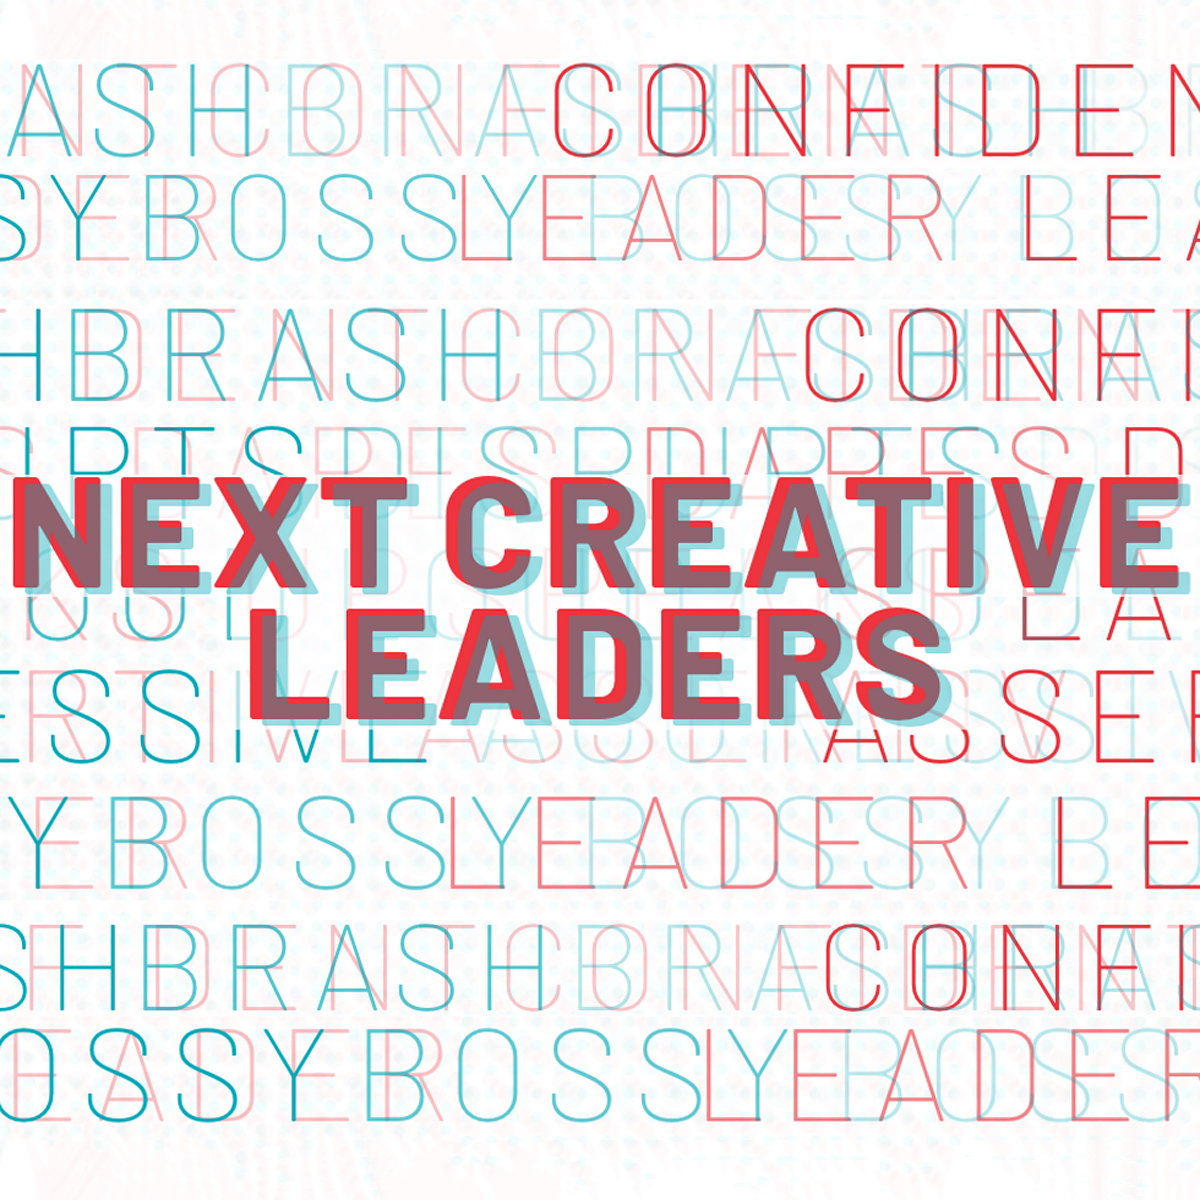 Next Creative Leaders 2018